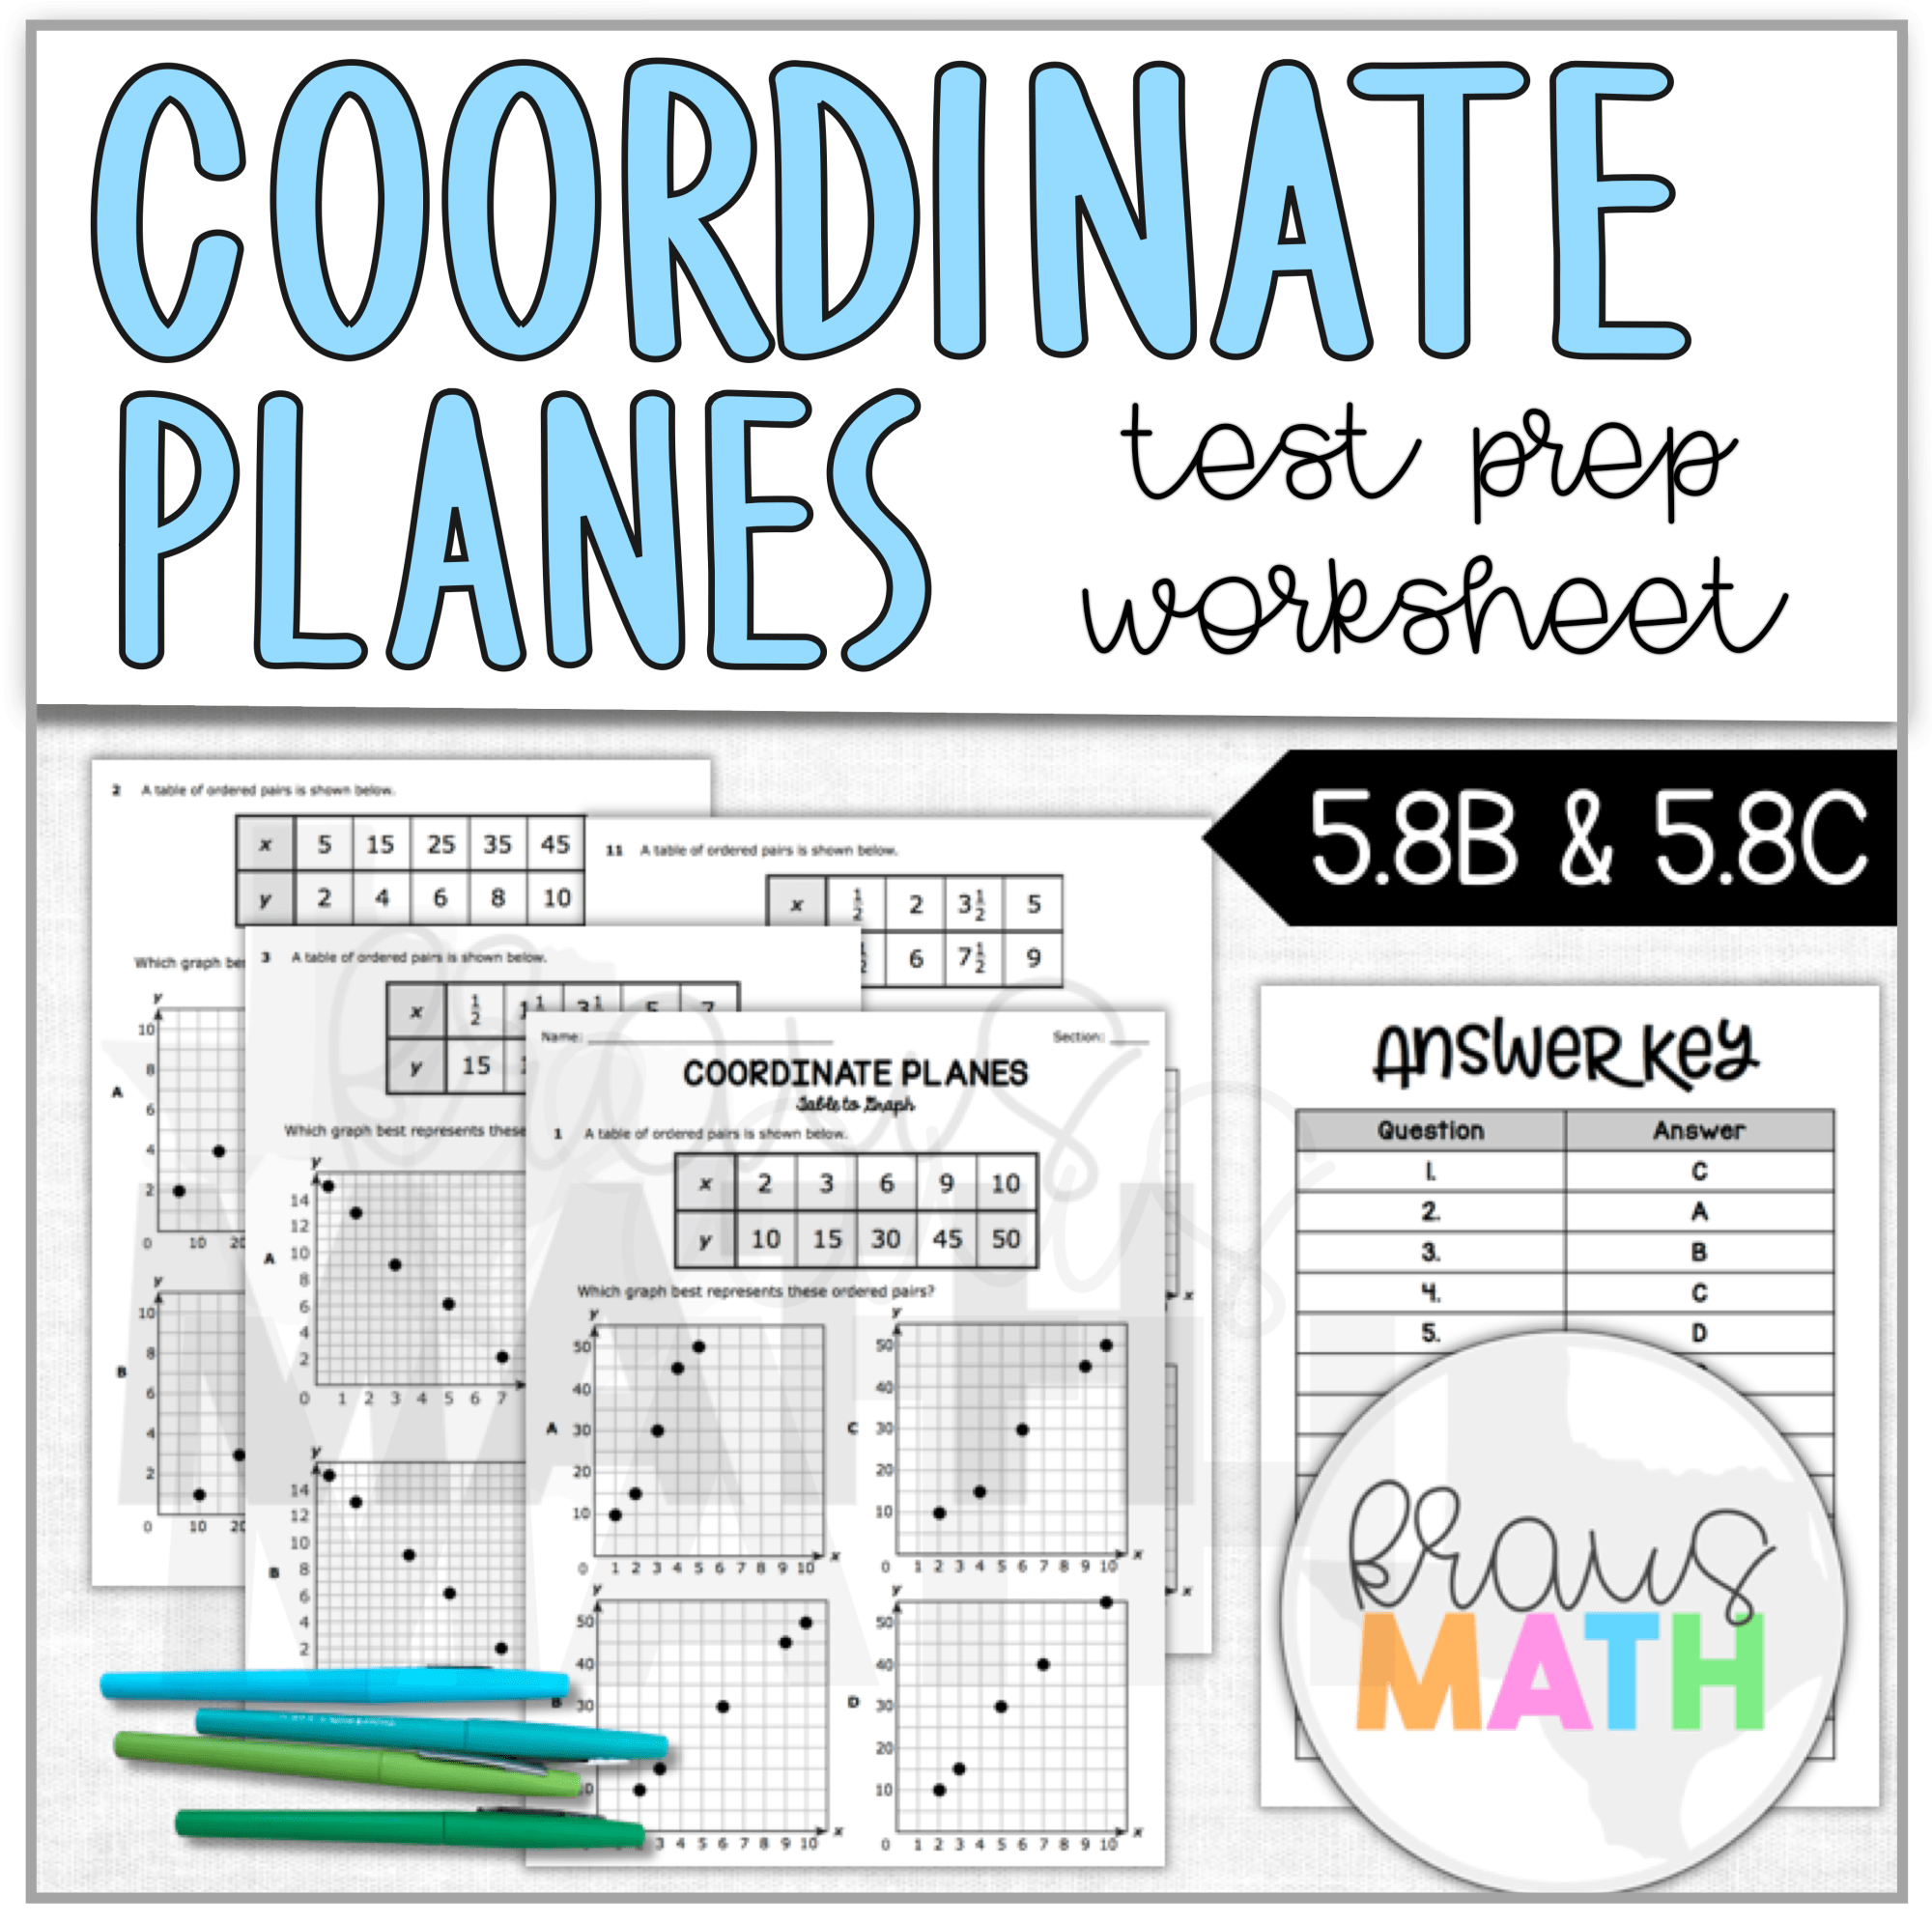 hight resolution of Coordinate Planes Worksheet (TEKS Aligned 5.8B \u0026 5.8C)   Kraus Math